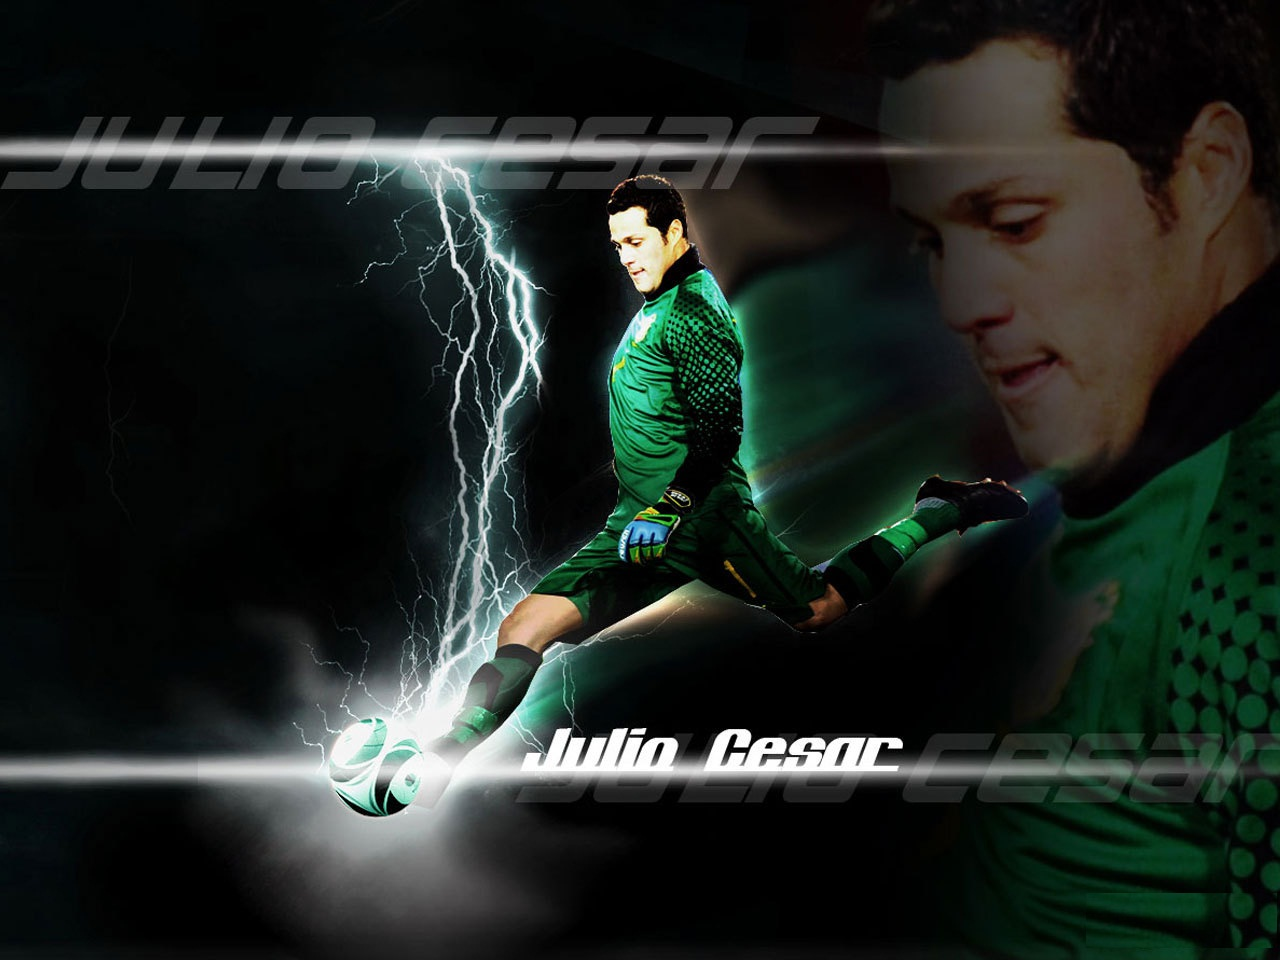 Julio Cesar hd Wallpapers 2012 | All About Sports Stars